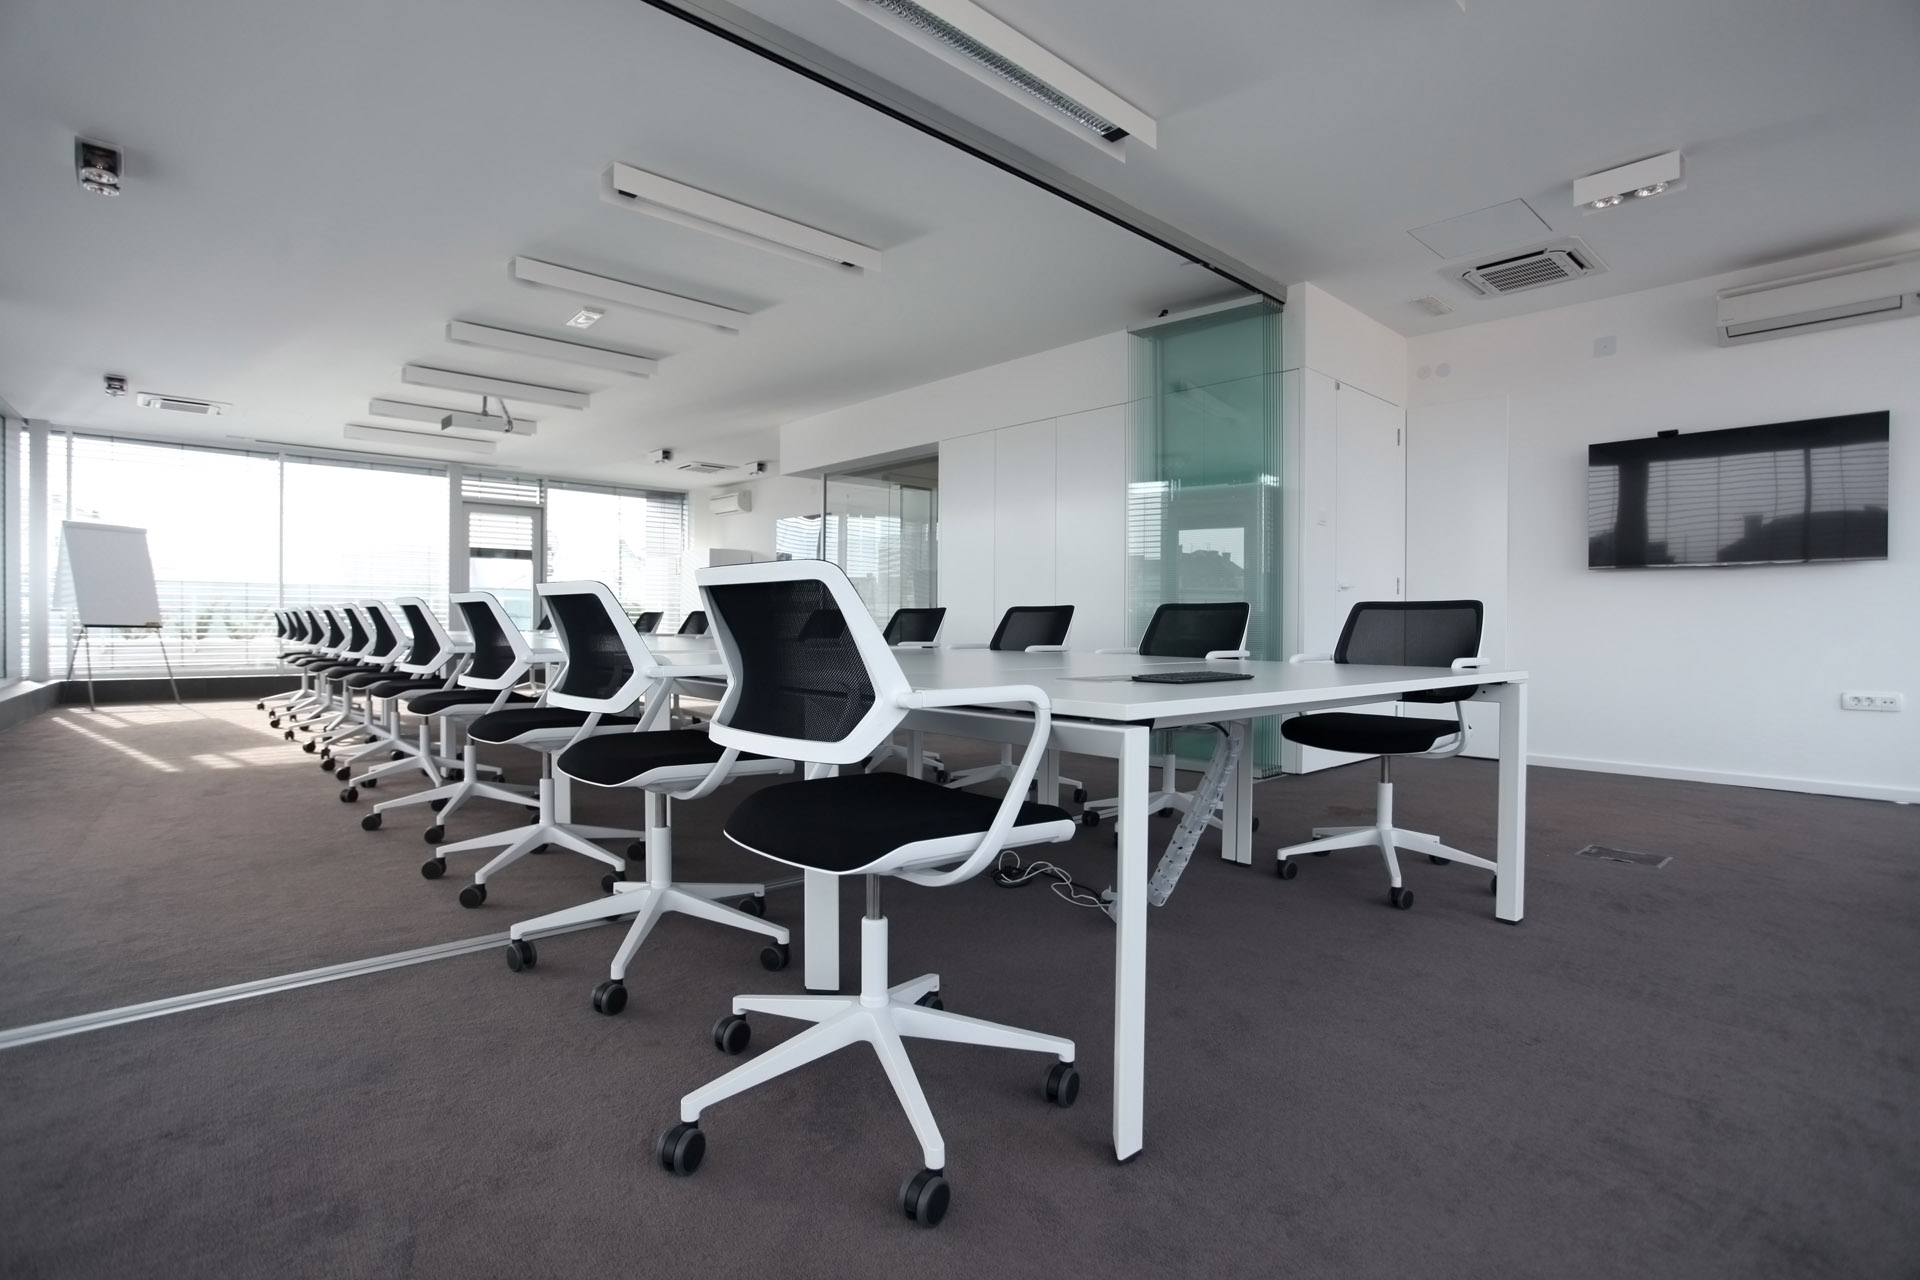 Pedjapetkovic Office Building Expansion - Expanding conference table